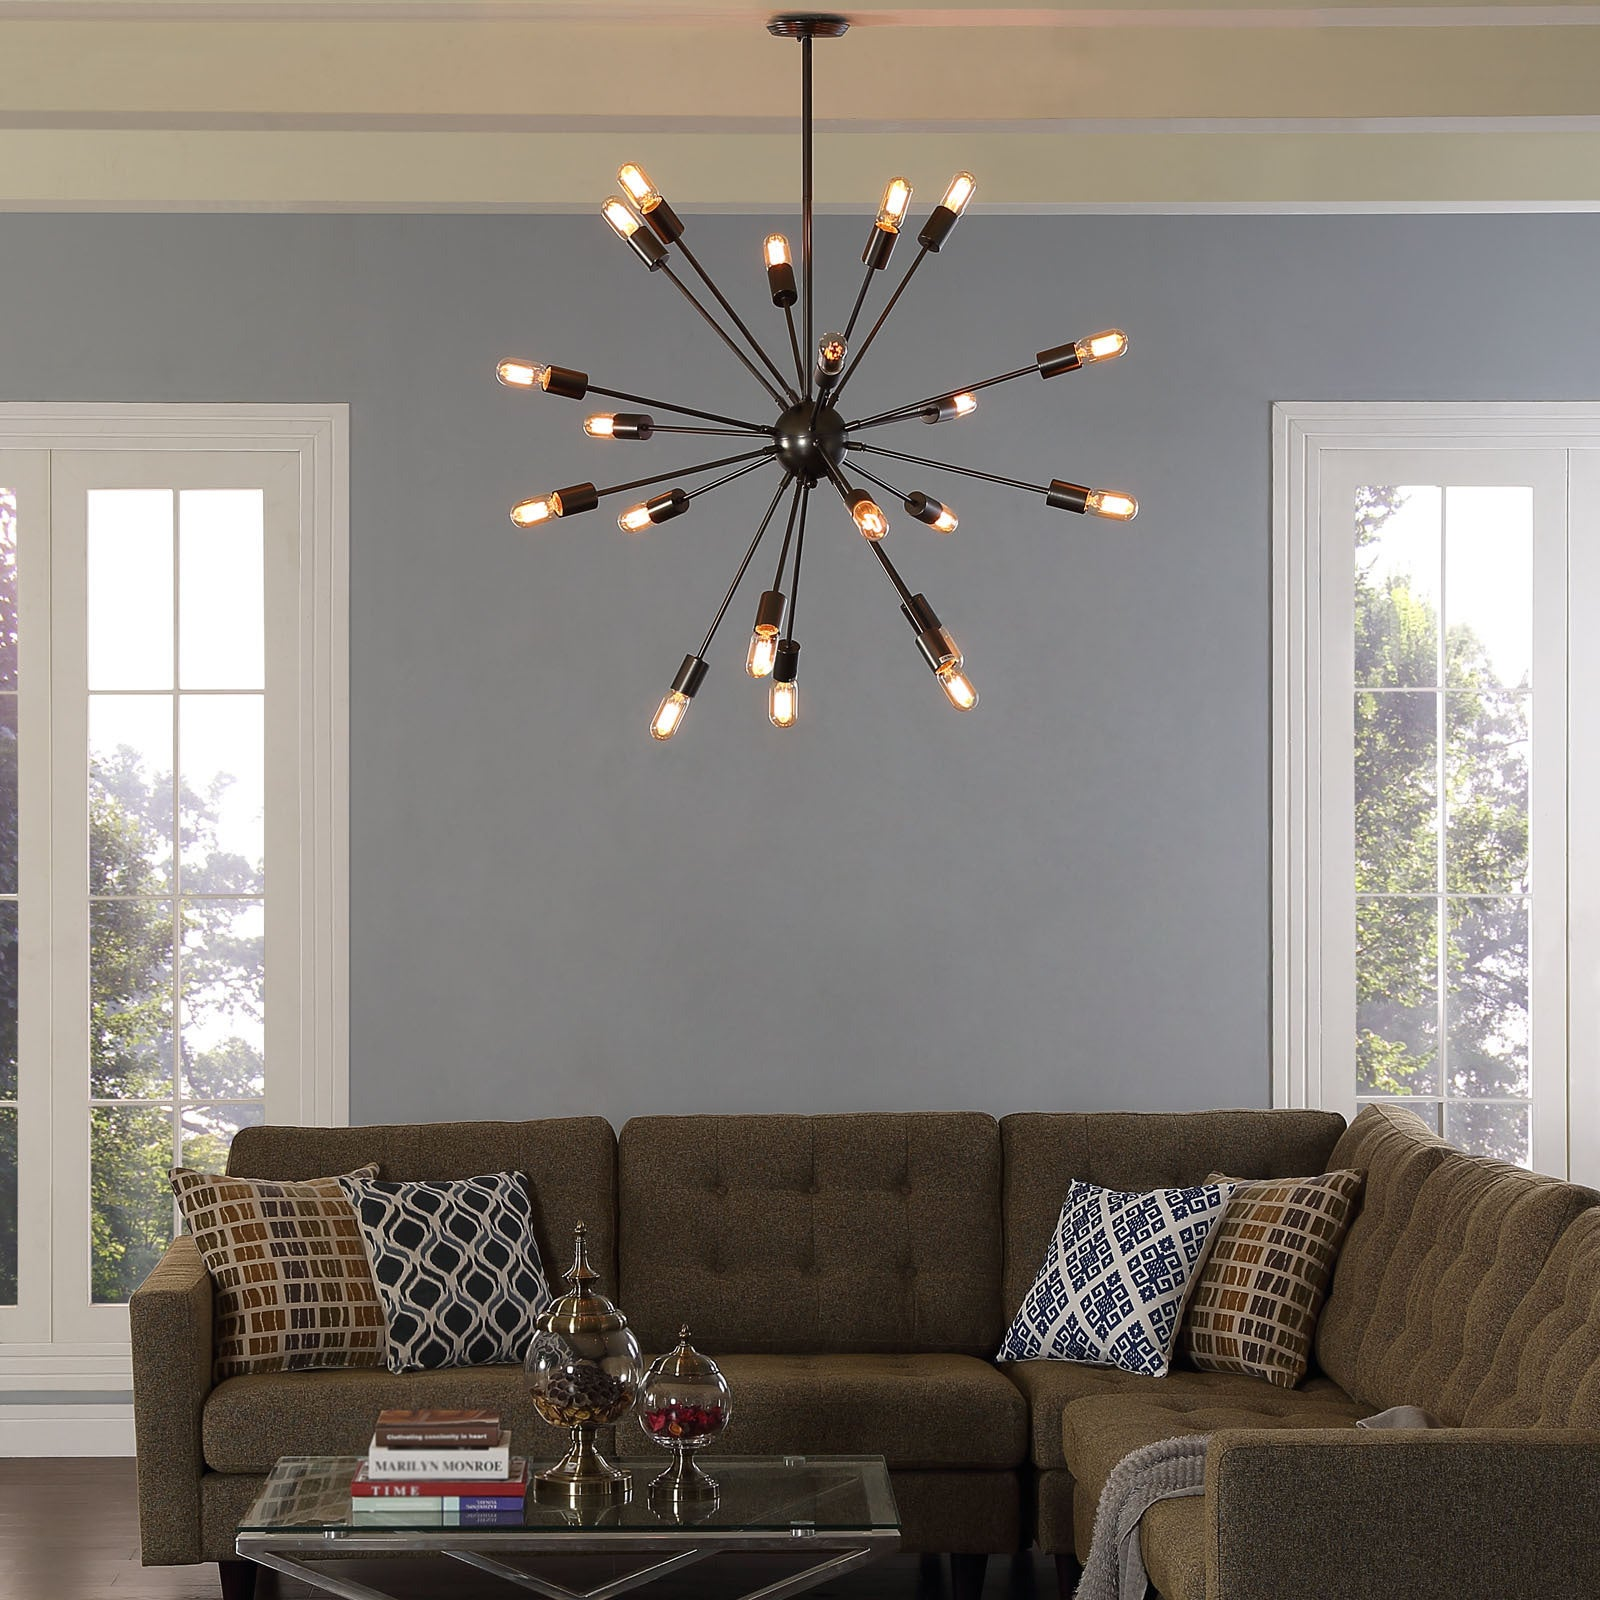 Beam stainless steel chandelier free shipping today overstock beam stainless steel chandelier free shipping today overstock 17175972 aloadofball Choice Image